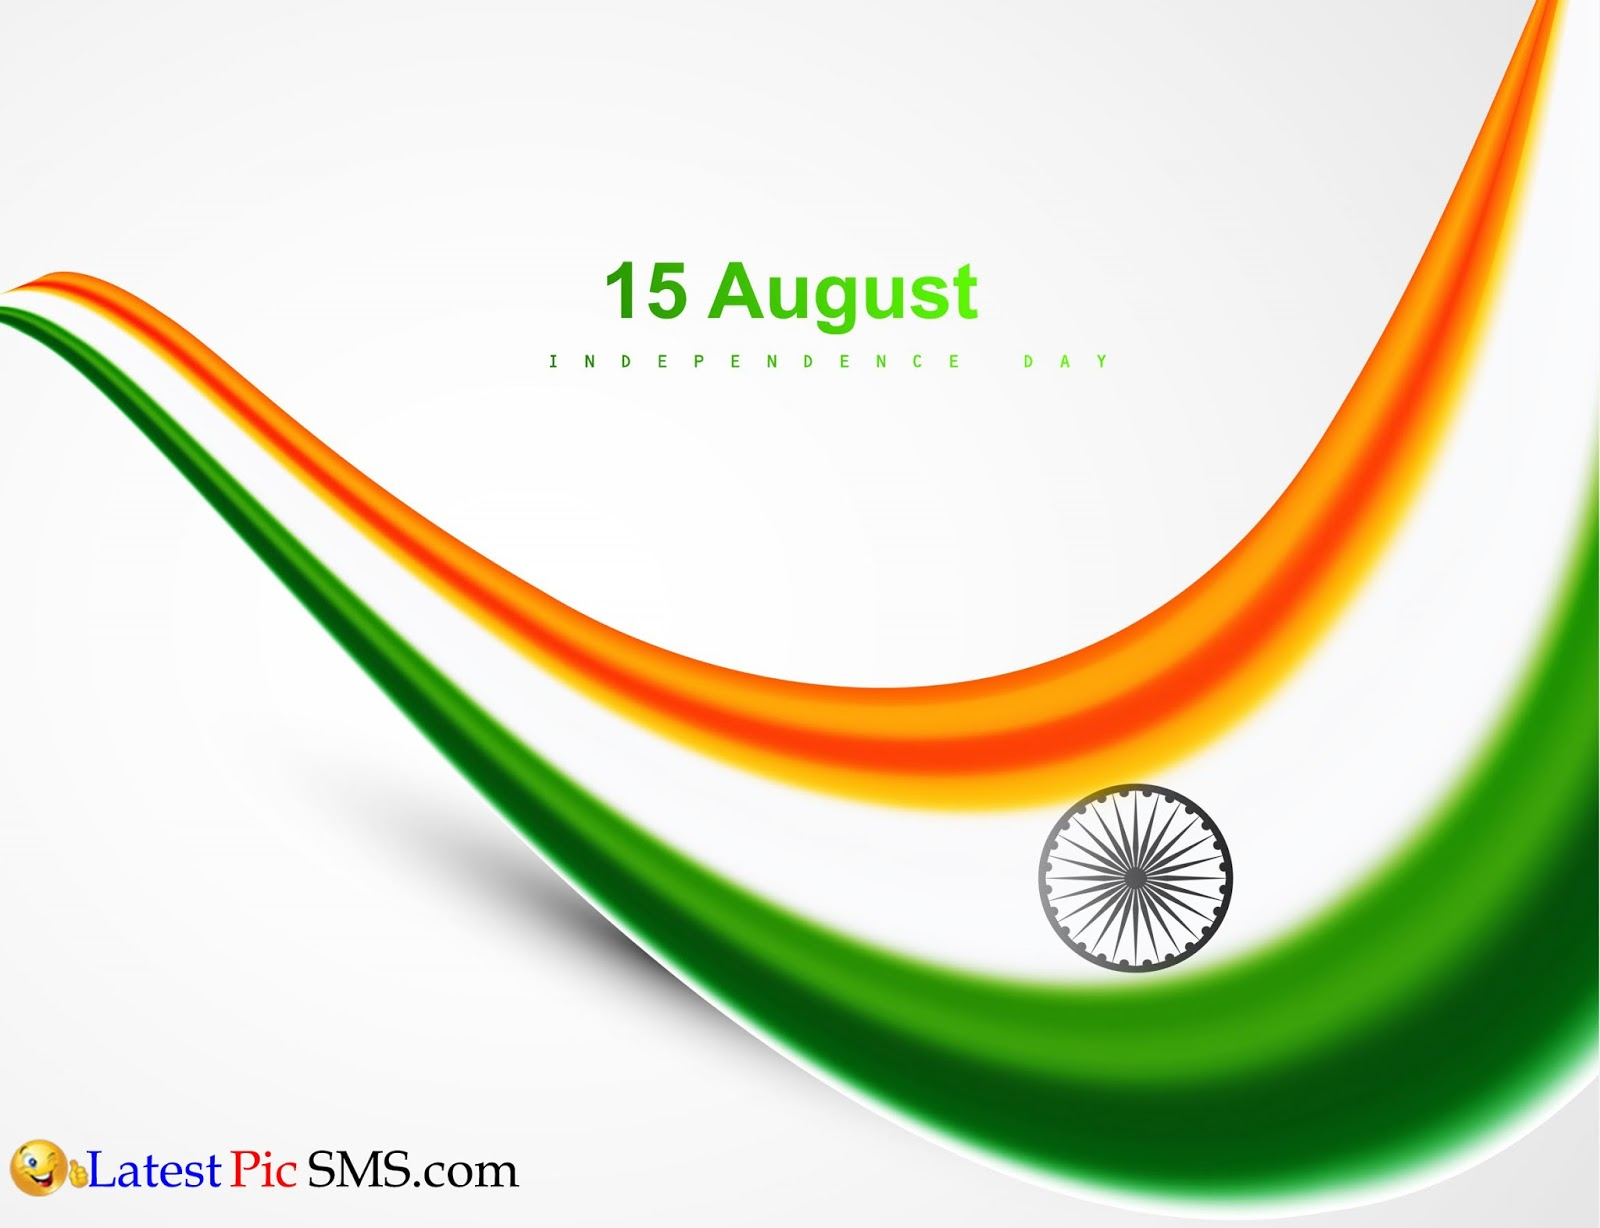 Happy Independence Day of India free HD Wallpapers - 15 August Indian Independence Day Full HD Images Wallpapers for fb